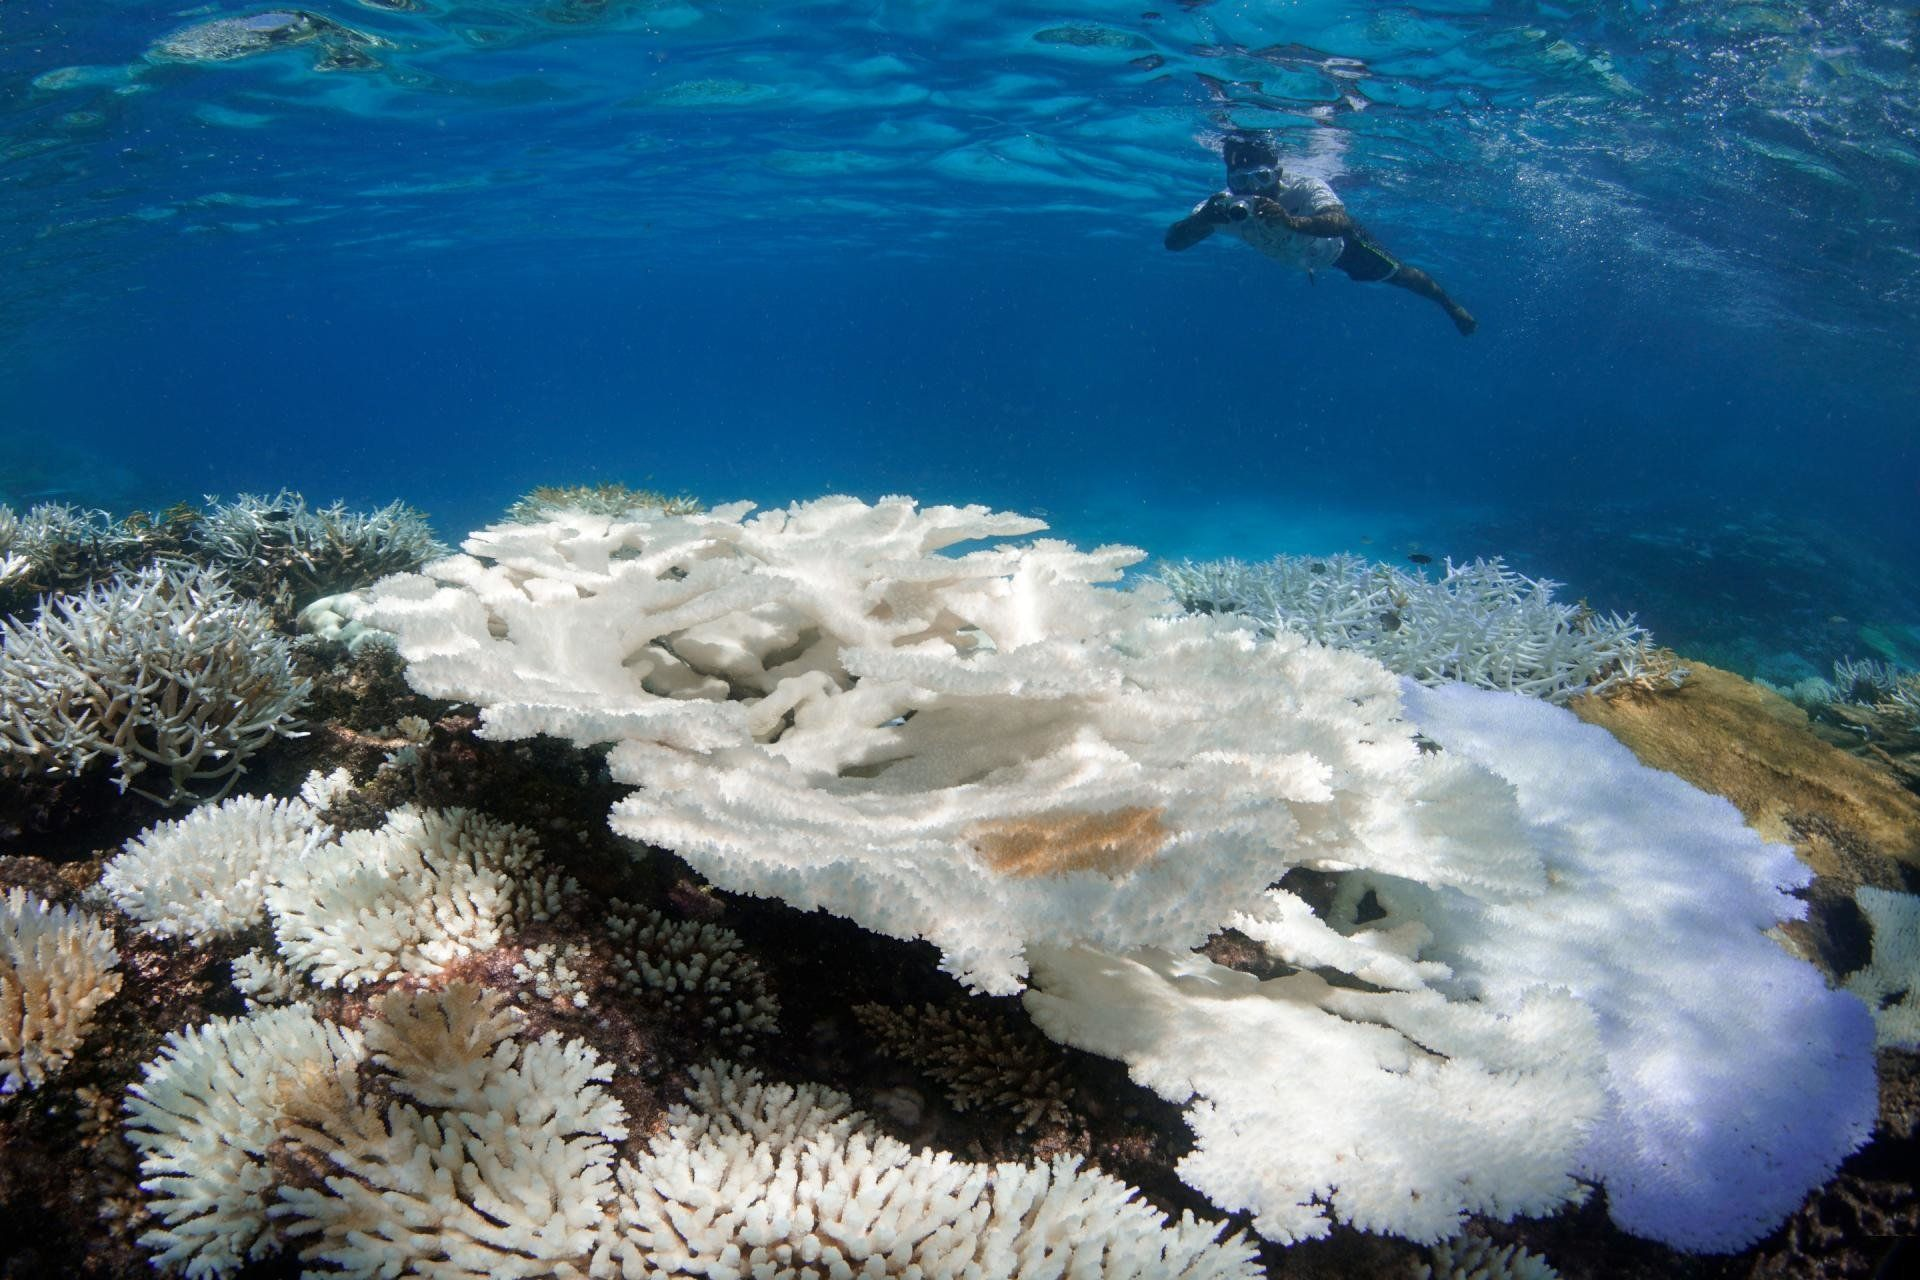 Snorkeler surveying coral bleaching in the Maldives inMay.